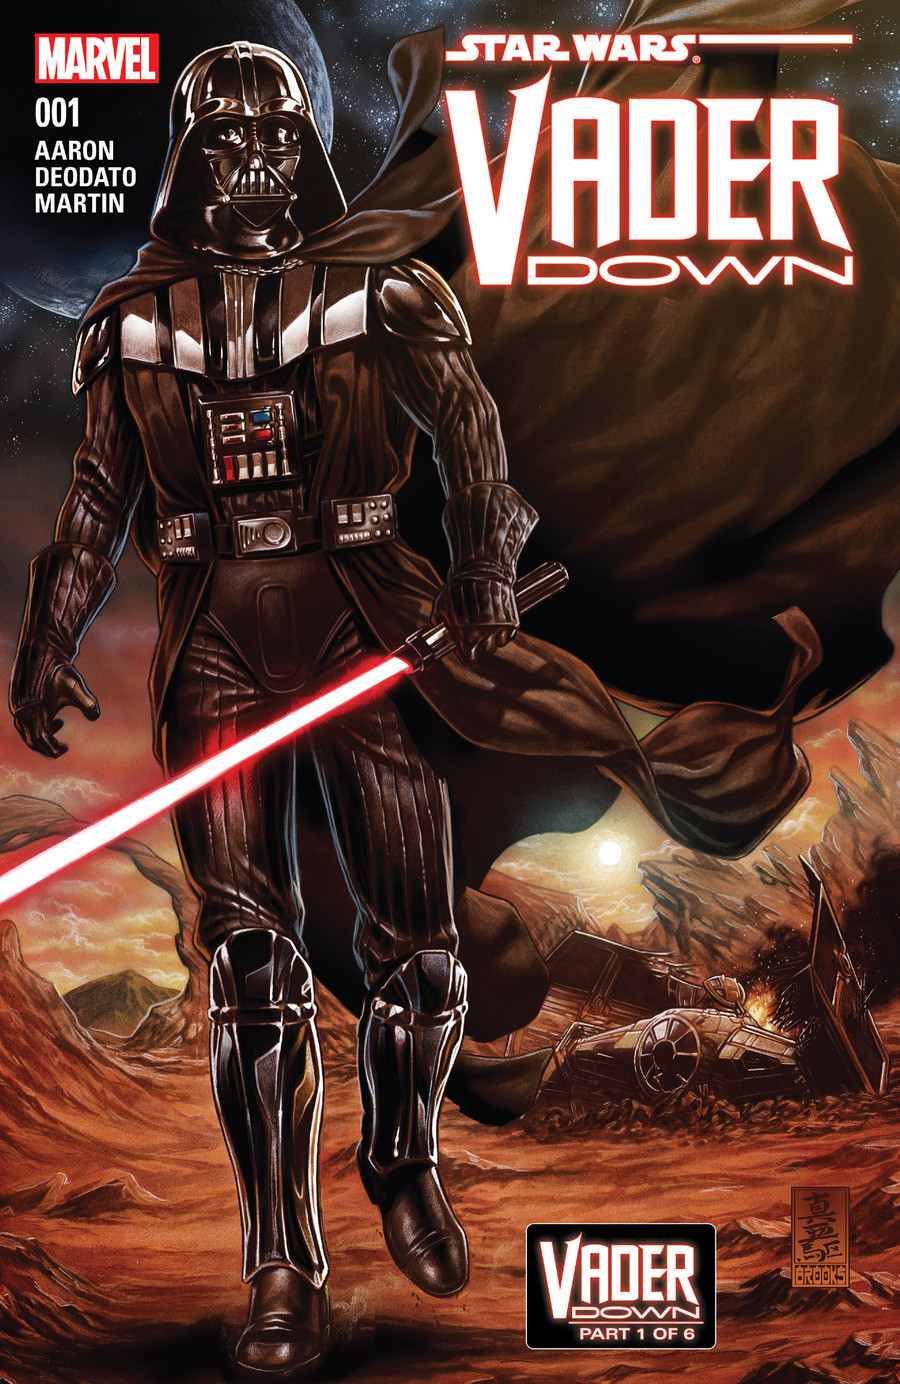 Star Wars Darth Vader: Vader Down. And here it is, Vader Down, some great stuff happens in this comic arc. Click the lists mention history and these three links